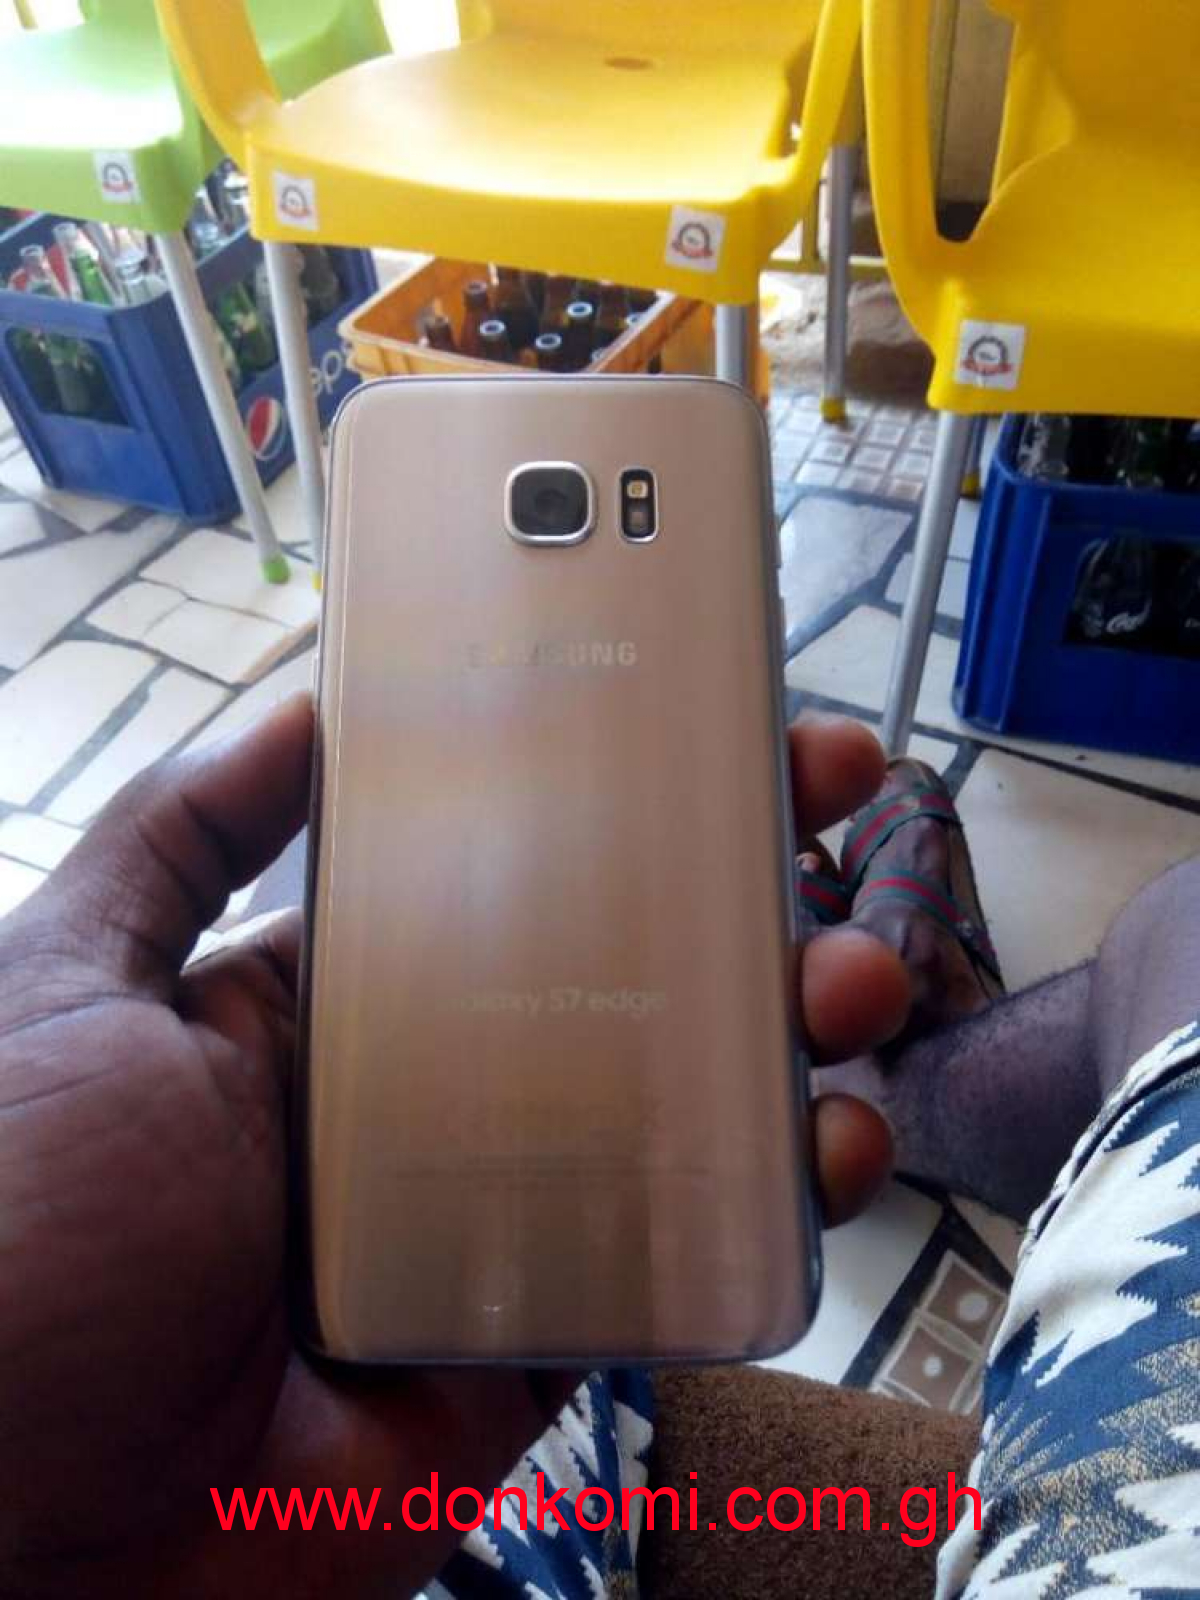 Samsung galaxy s7 edge with small crack on the screen but fresh